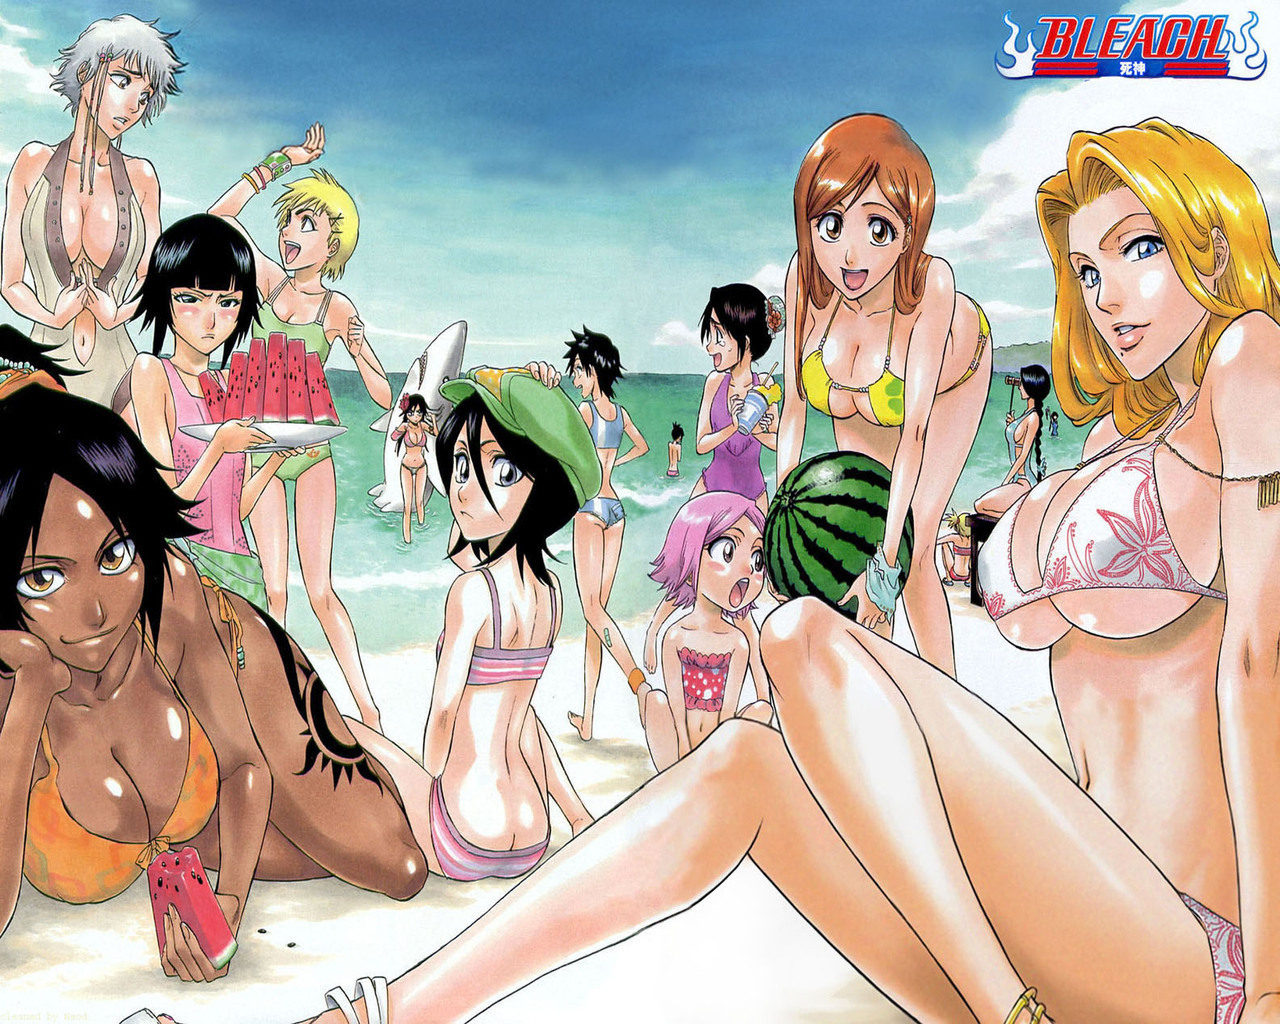 Bleach Girls at the tabing-dagat